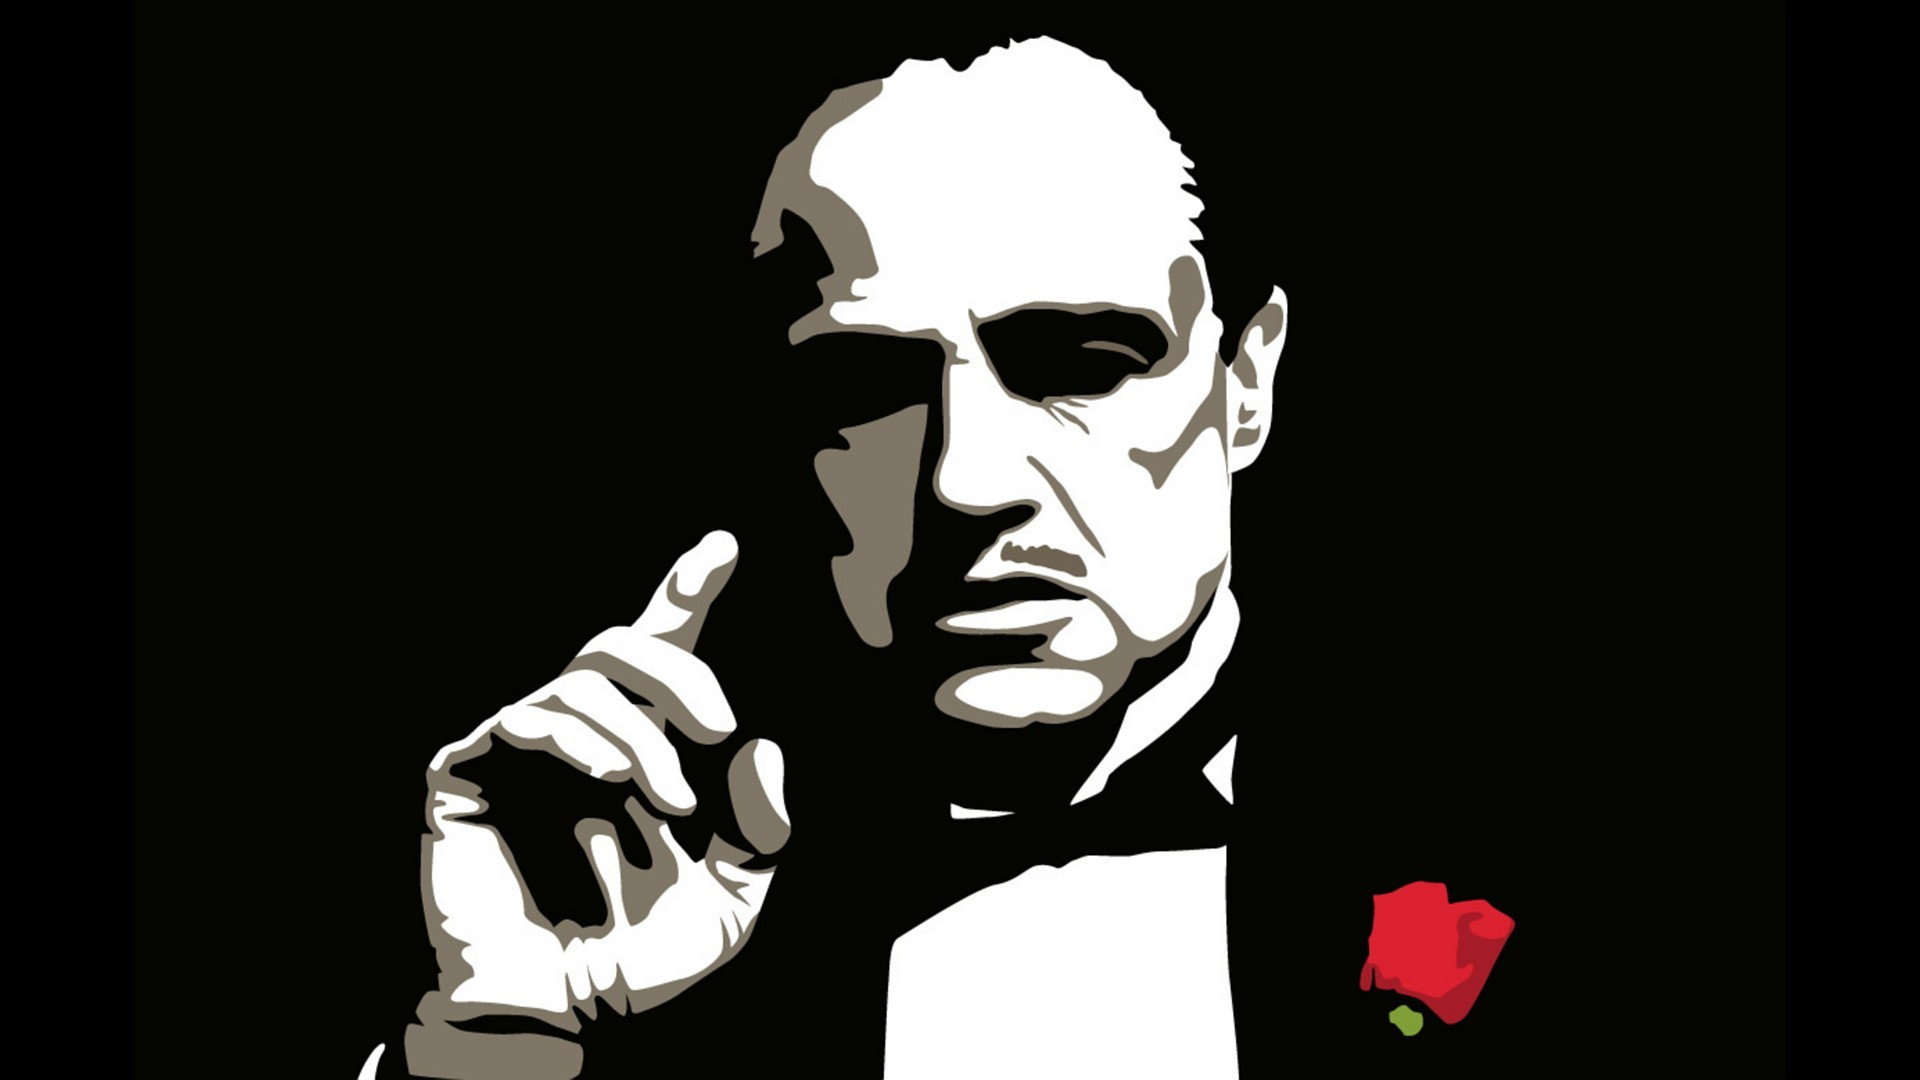 godfather full movie free download